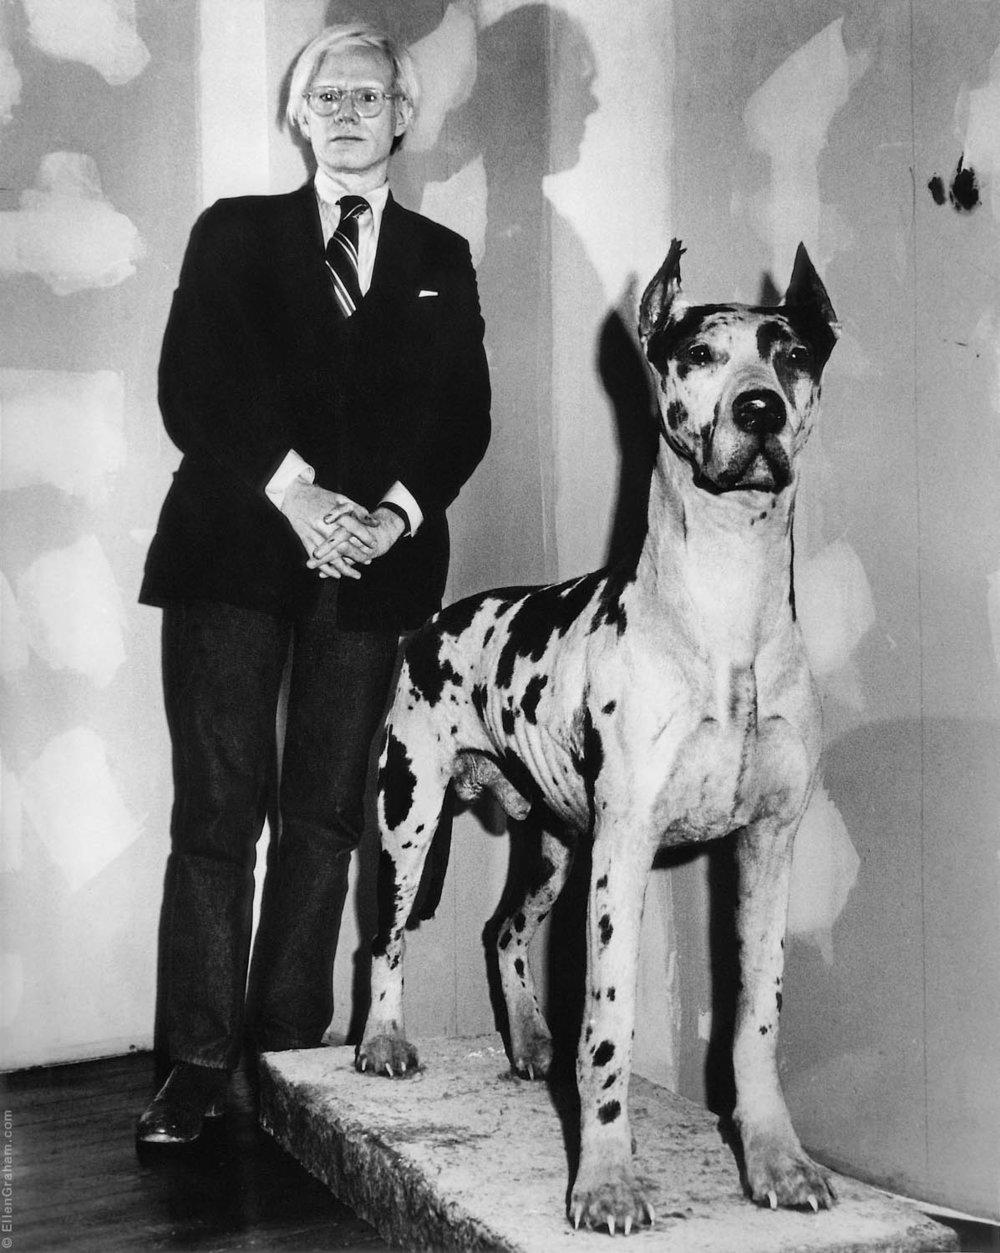 Andy Warhol With Stuffed Dog, The Factory, New York, NY, 1974